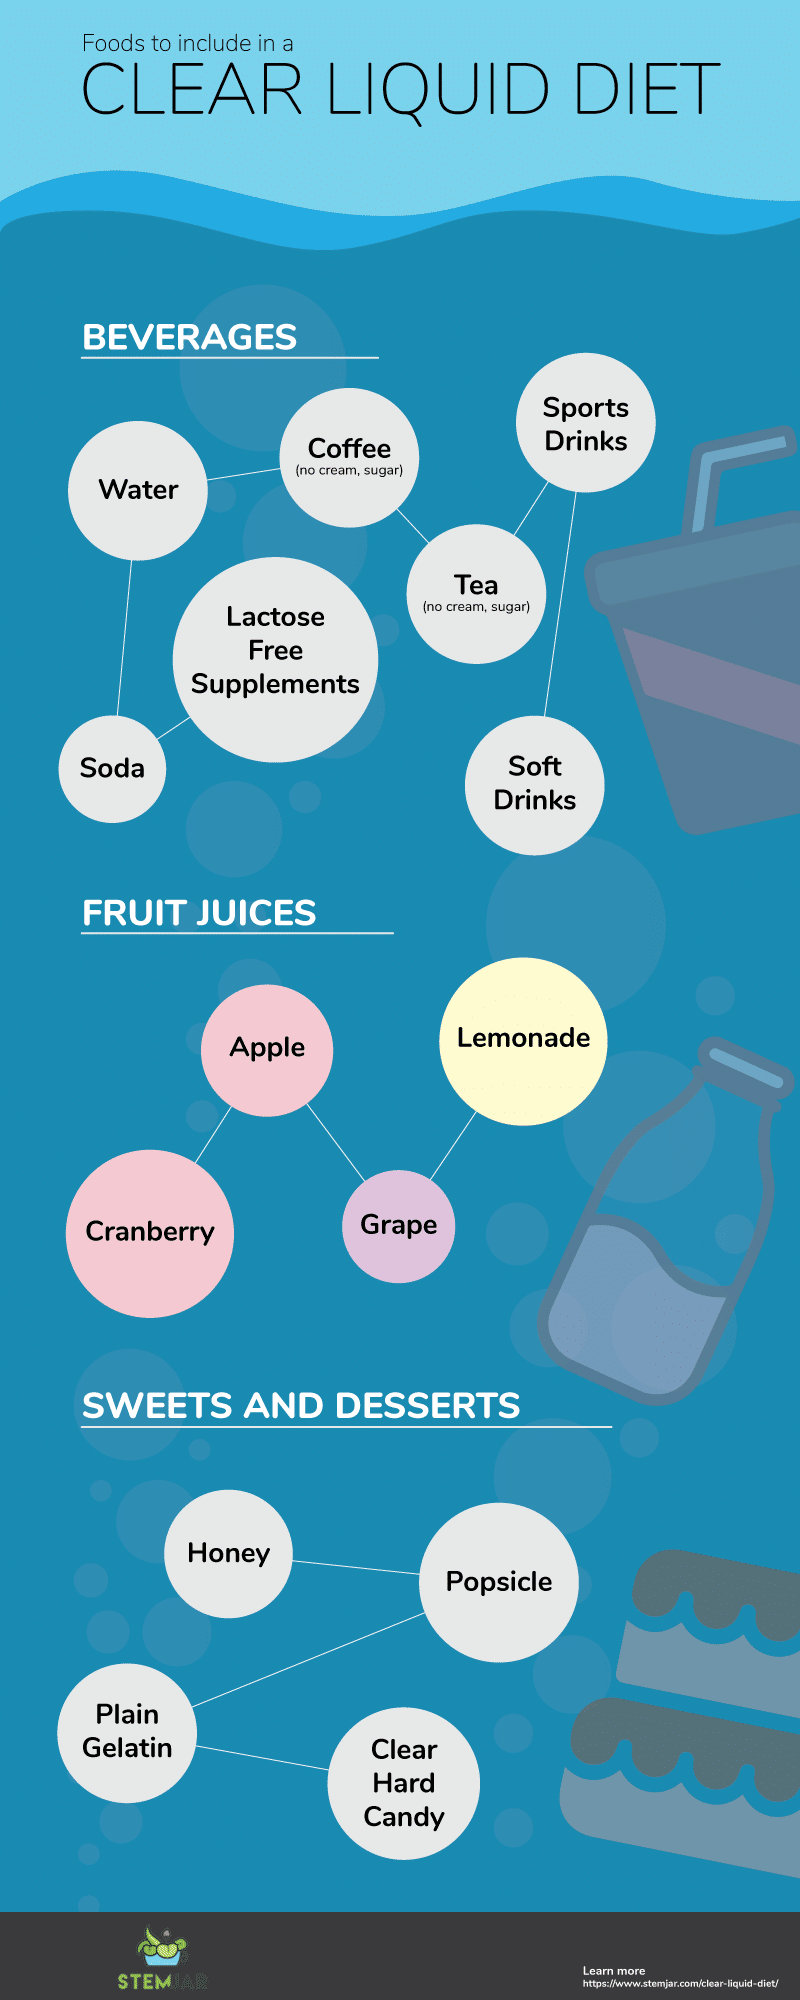 things to eat on a clear liquid diet